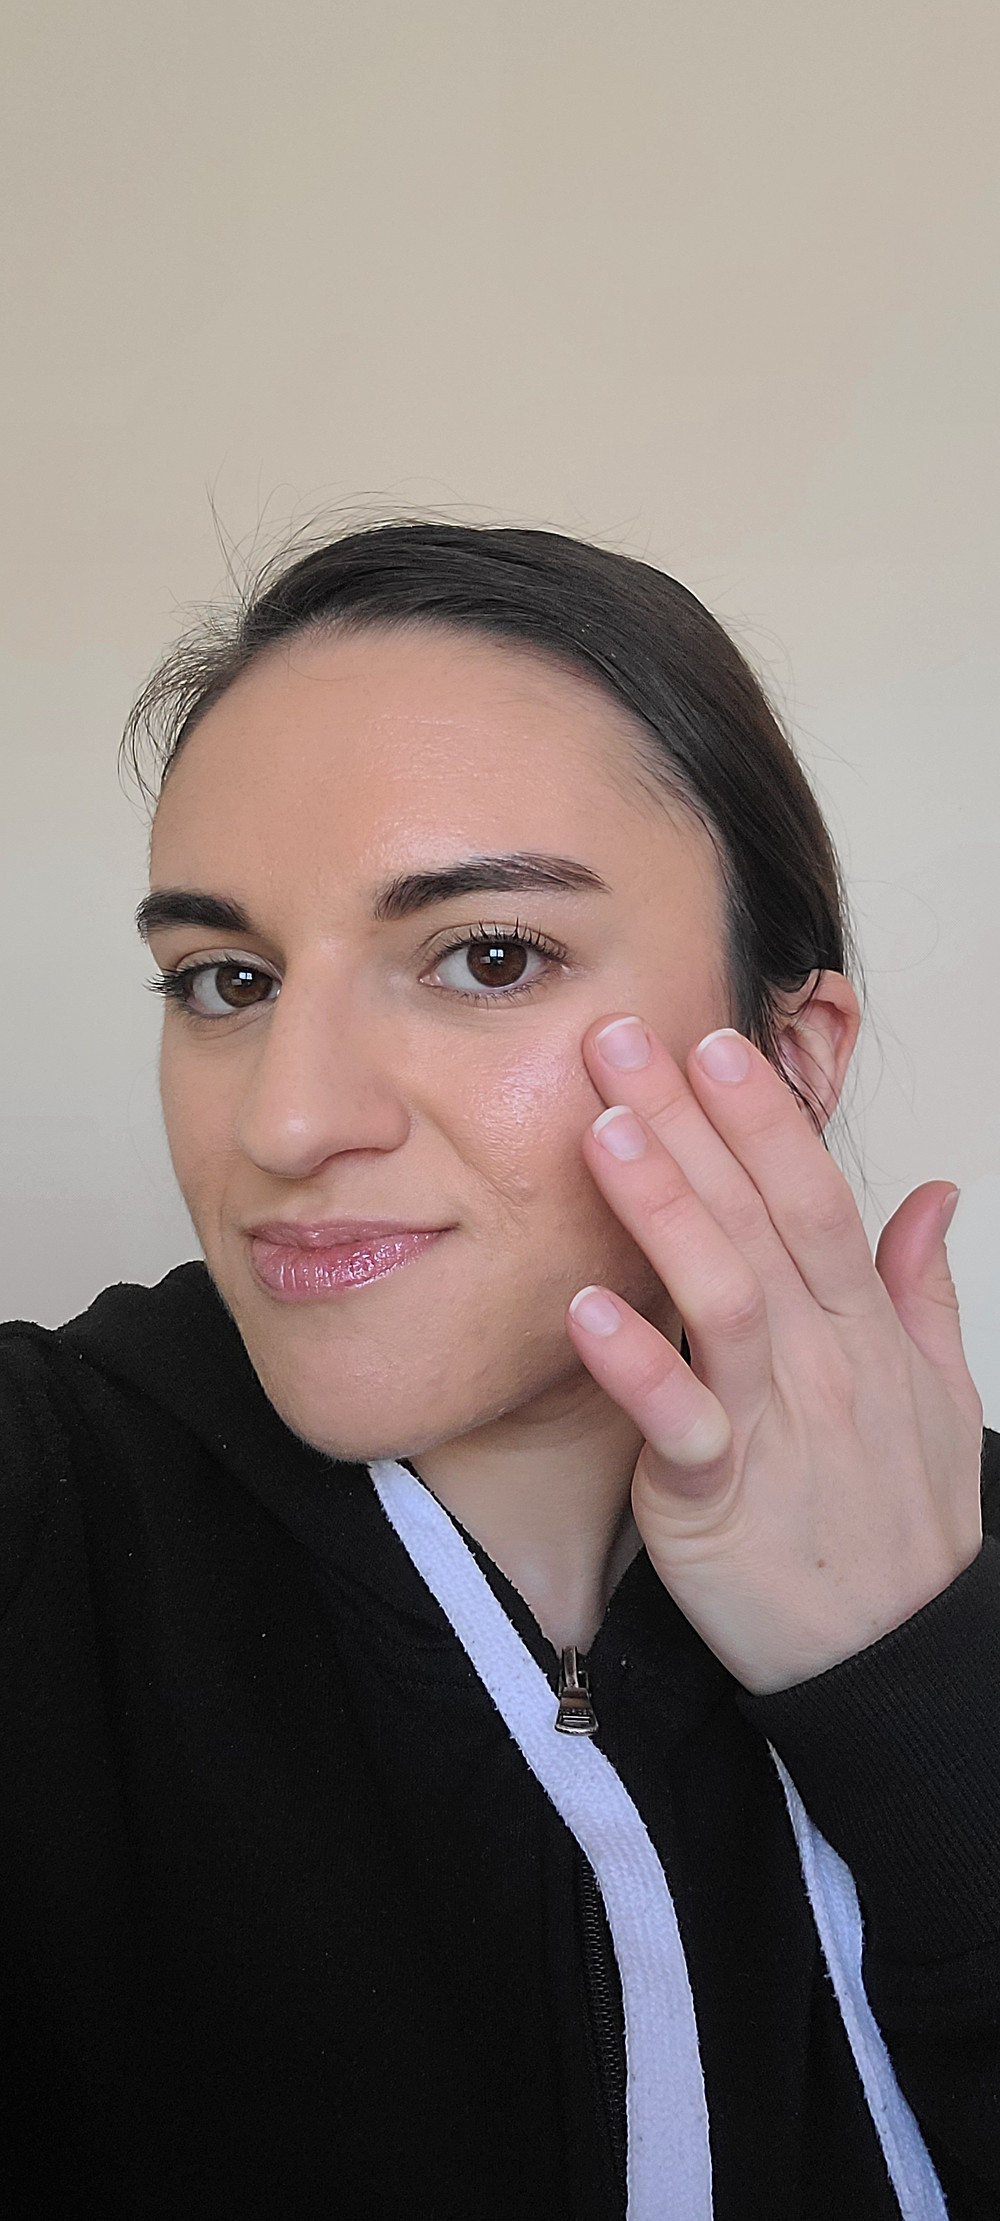 Carla is applying highlighter to her cheek bone with her ring finger.